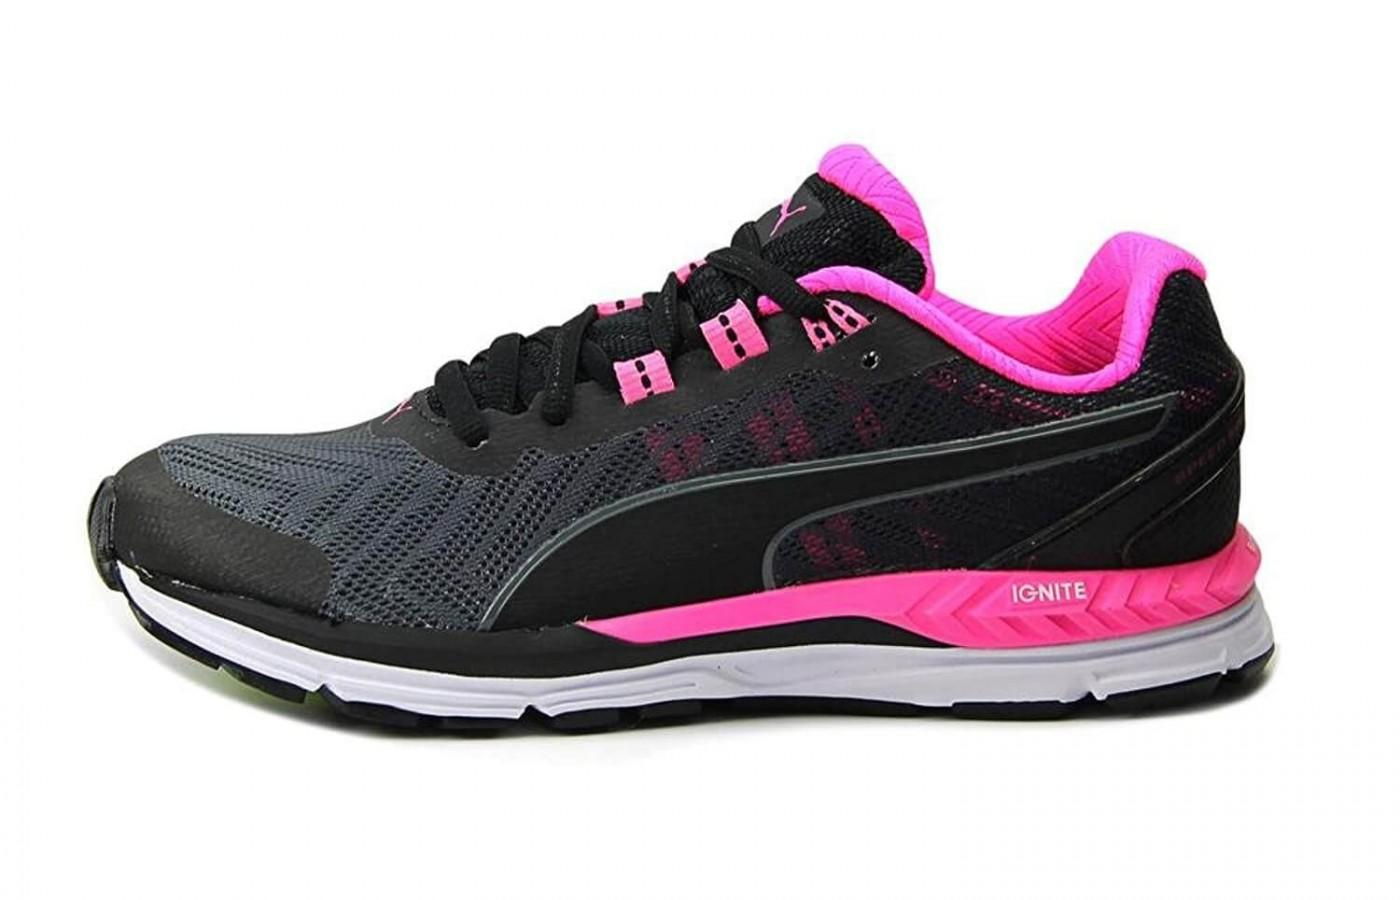 The midsole provides a lightweight cushioning that protects the runner and propels them forward.